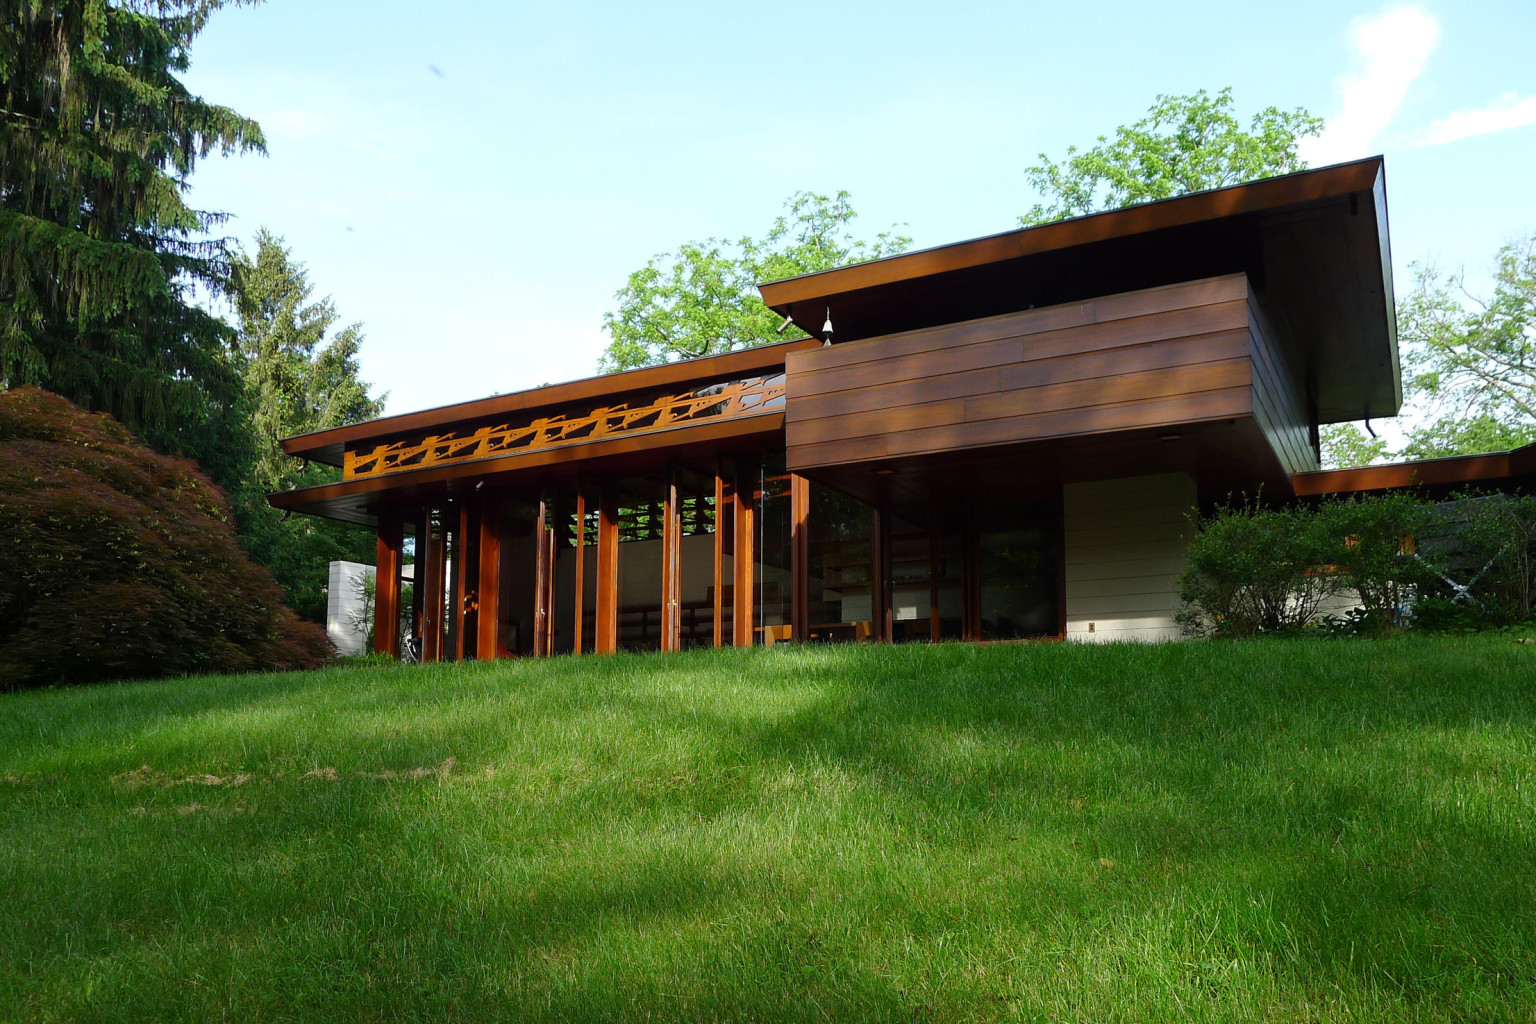 Frank Lloyd Wright Architectural Style the bachman wilson house and 12 other frank lloyd wright homes on